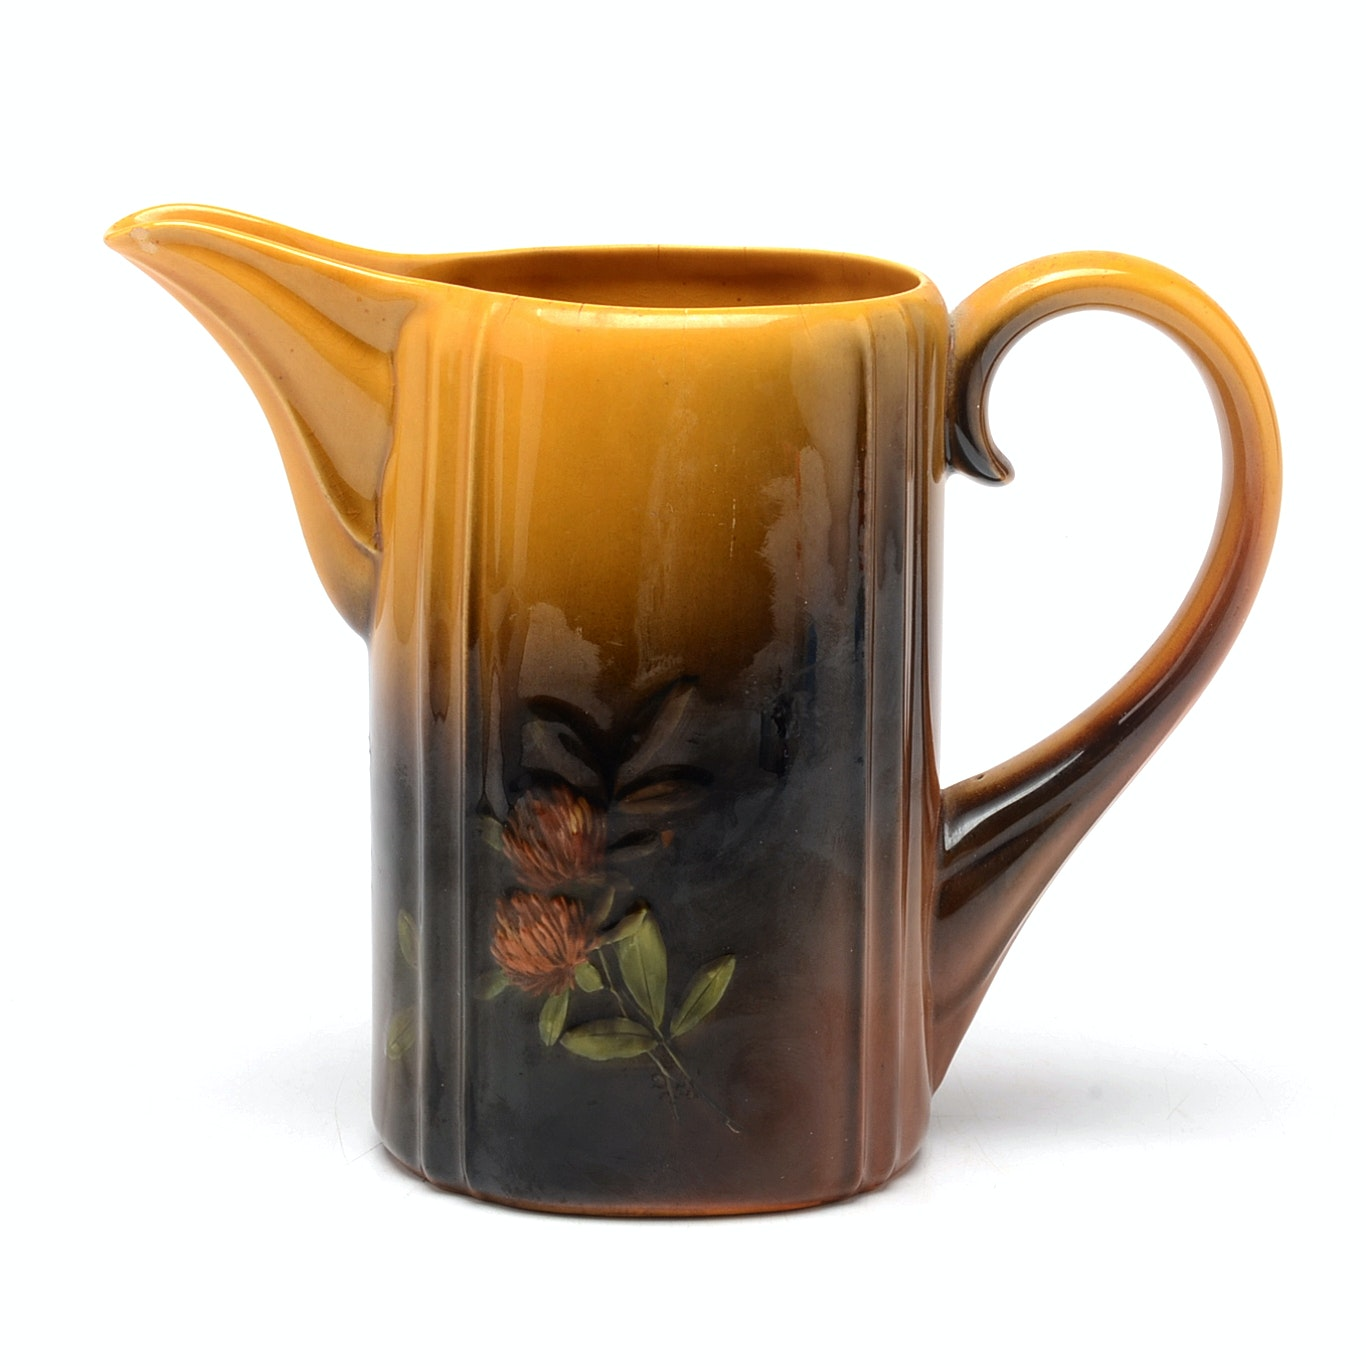 1891 Rookwood Pottery Pitcher by Olga Geneva Reed